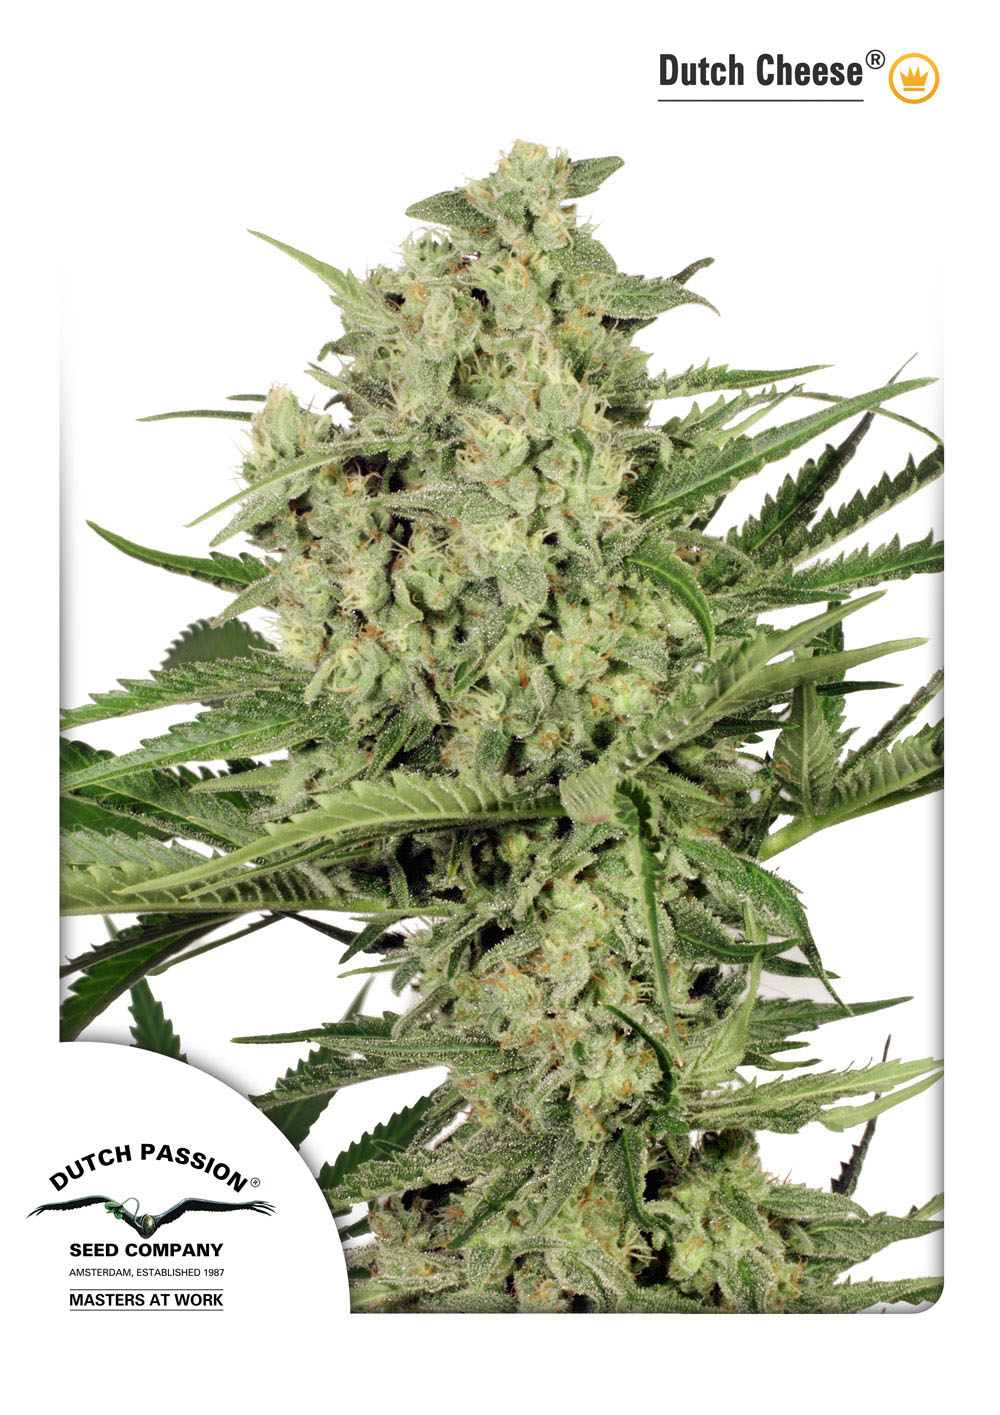 Recenzja Odmiany Dutch Cheese od Dutch Passion, Dutch Seeds